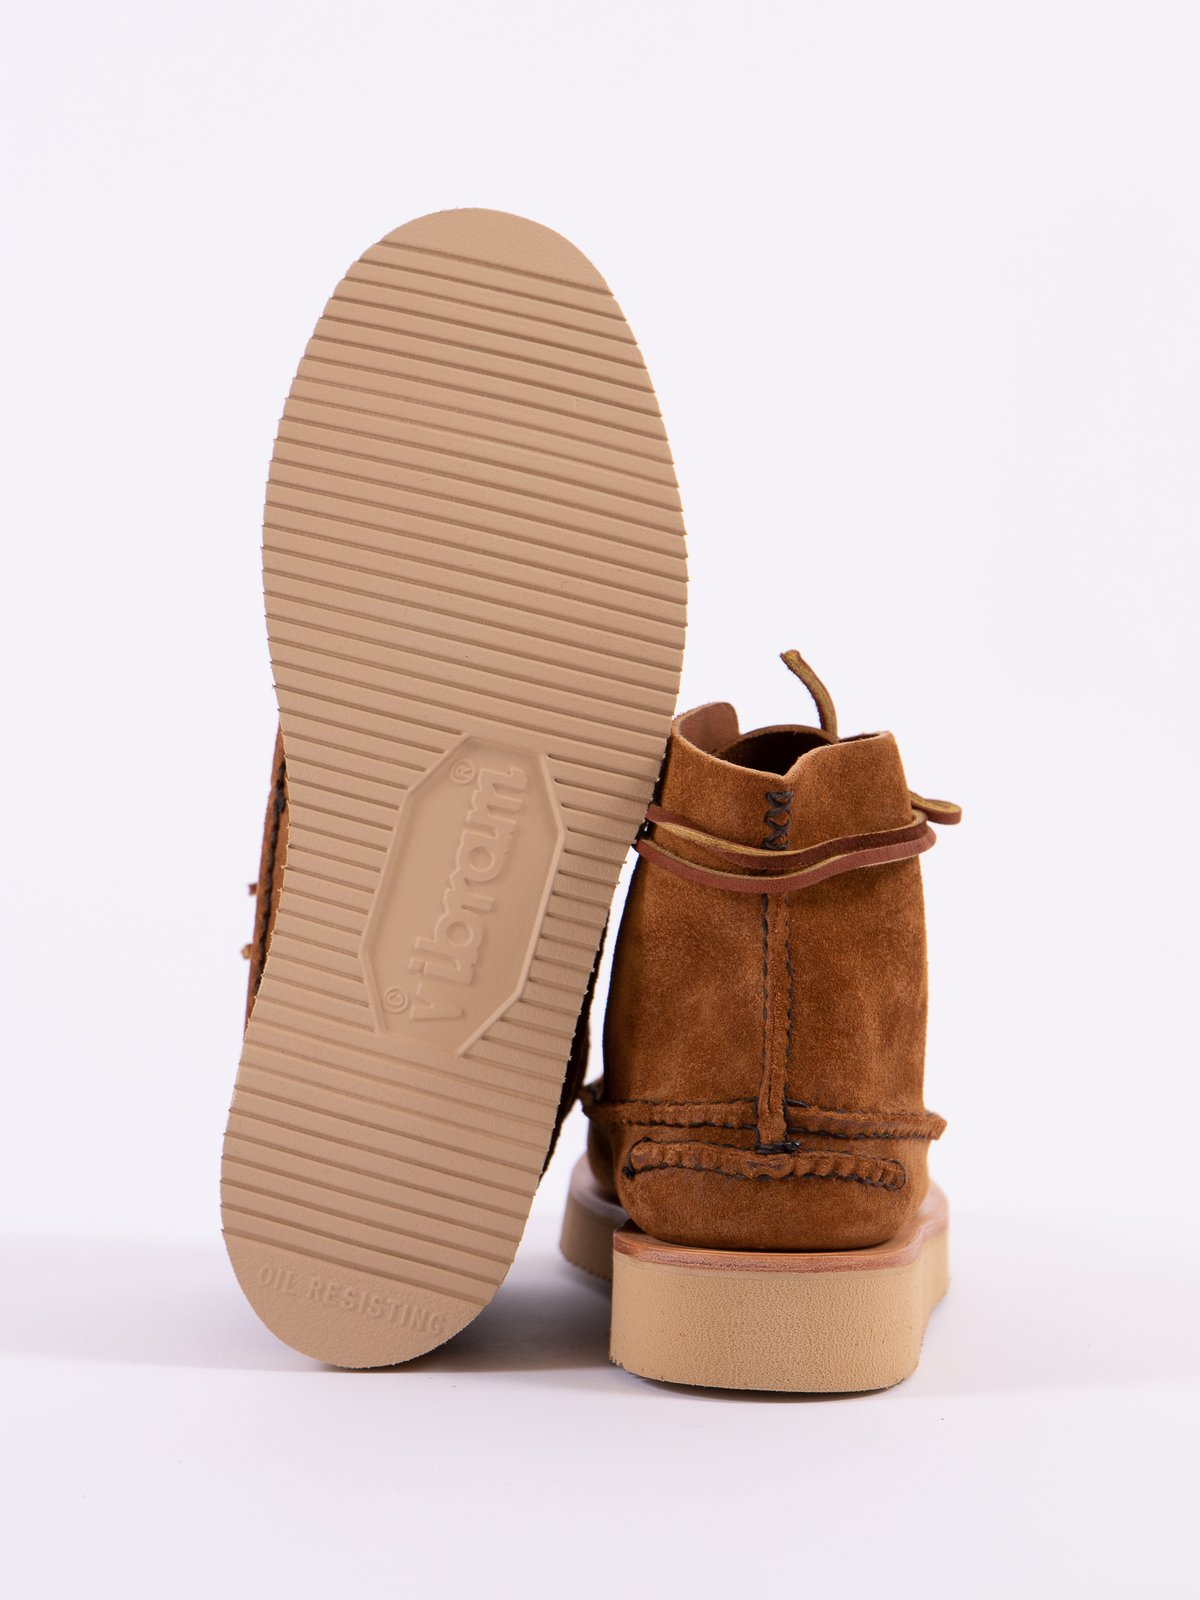 Golden Brown All Handsewn Sneaker Moc High Boot - Image 6